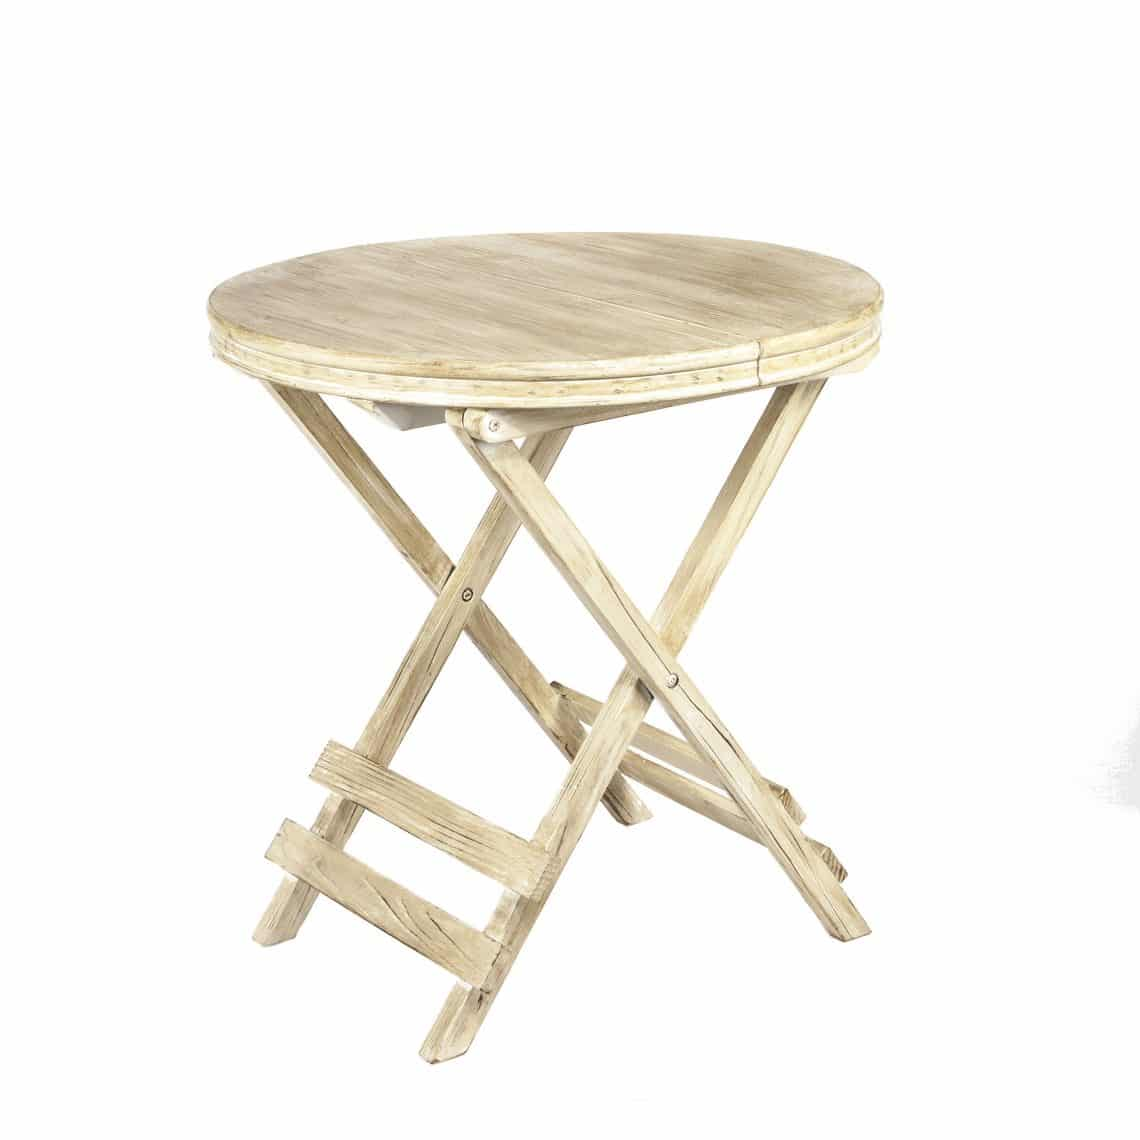 29 Inch Tall, 28 Inch Diameter Foldable Round Wood Table